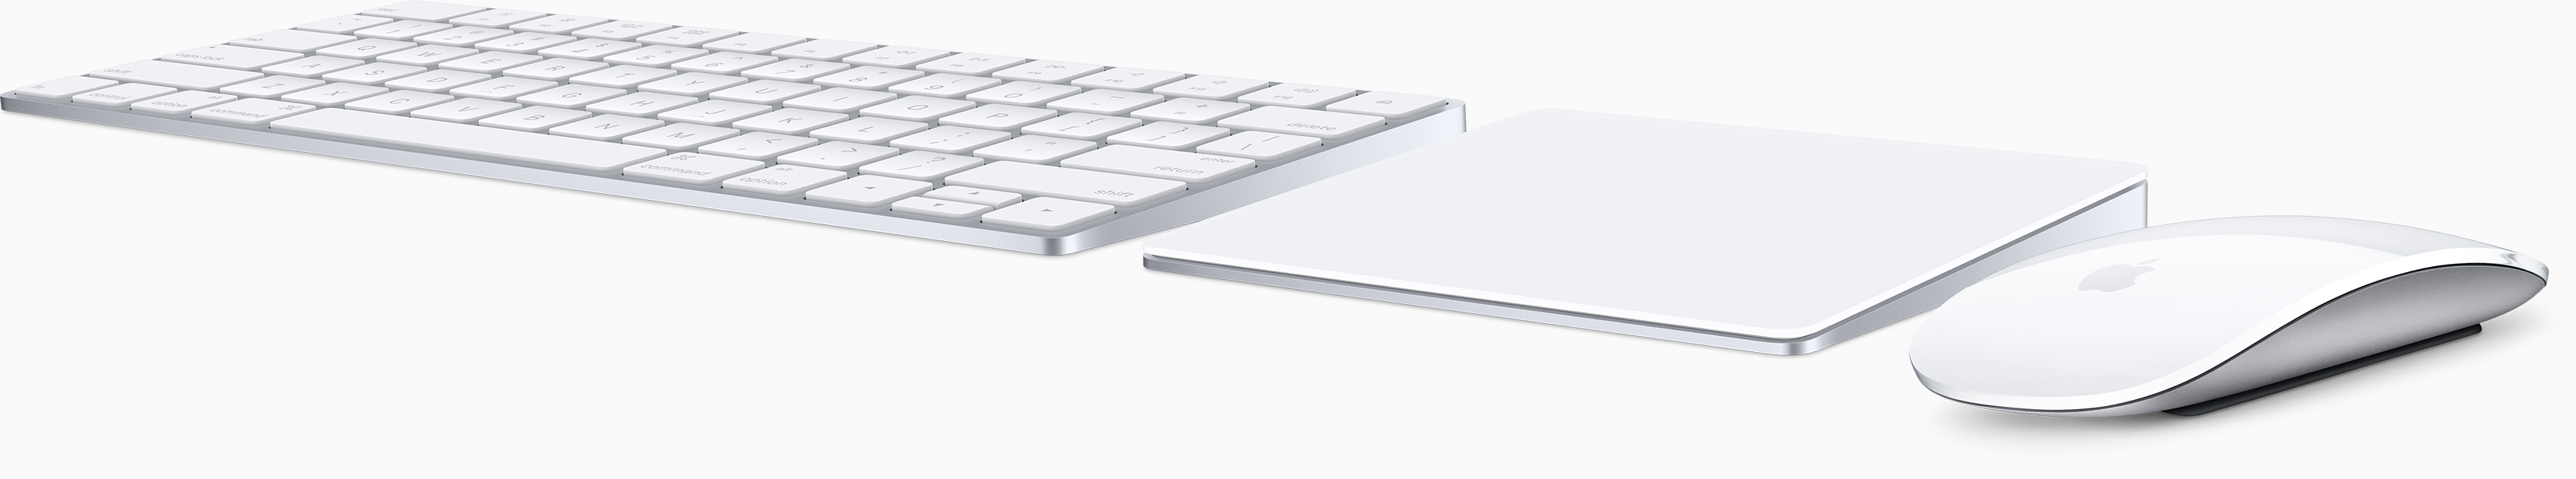 Magic Keyboard, Magic Mouse2, Magic Truckpad2を触ってきたよ